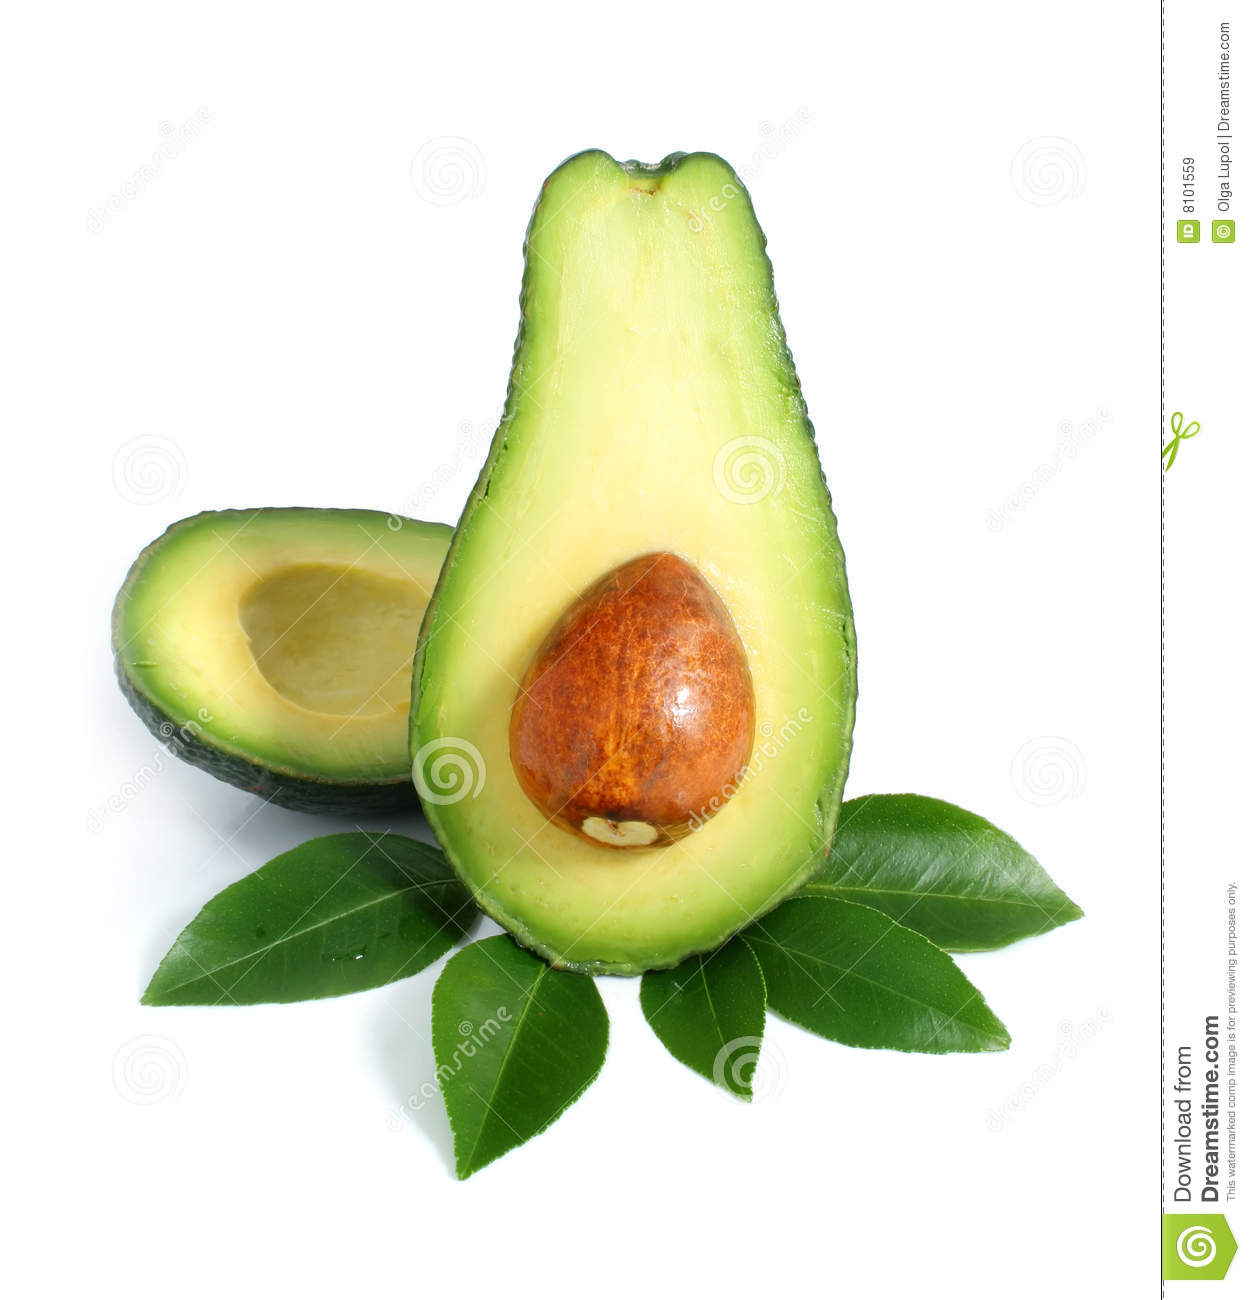 how to make guacamole with under ripe avocados